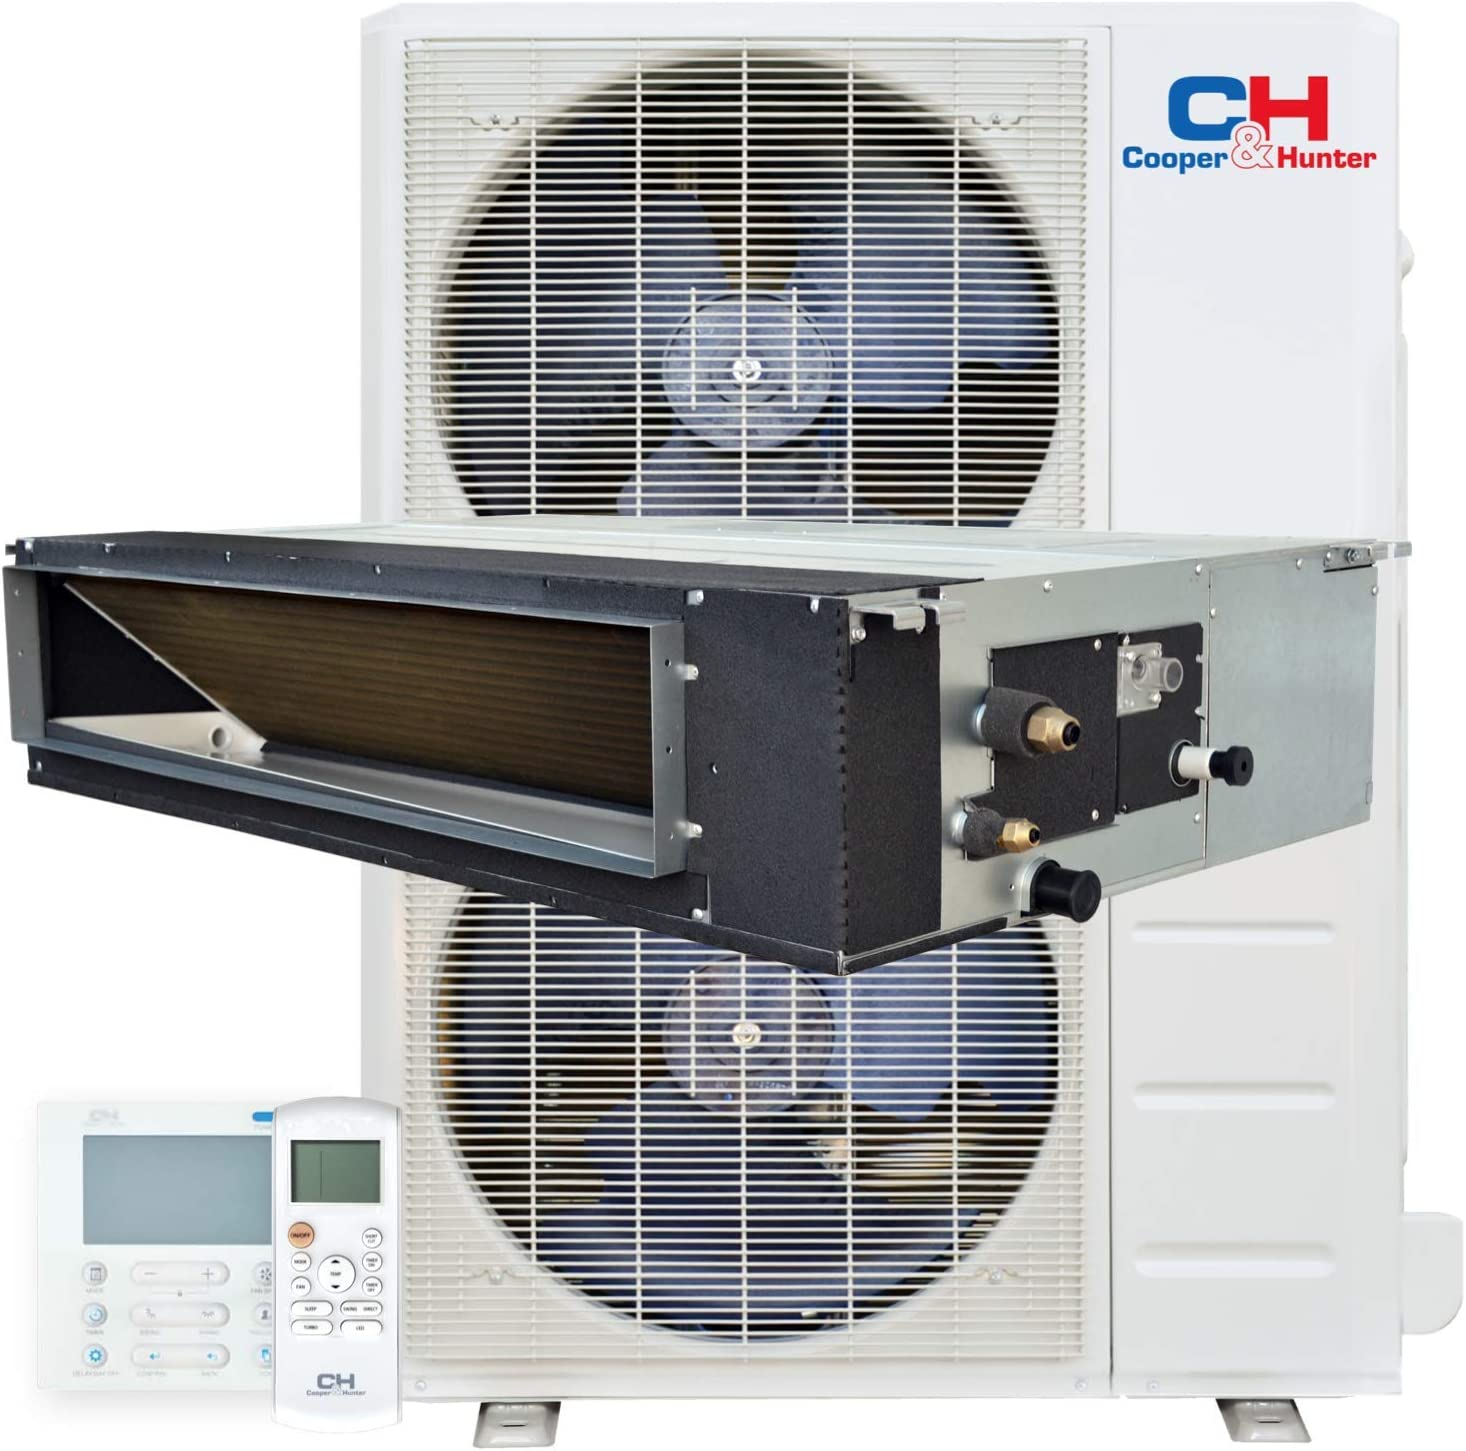 60 000 BTU Ducted Mini Split New Free Shipping Duct Heat Conditioner Air Large-scale sale Concealed